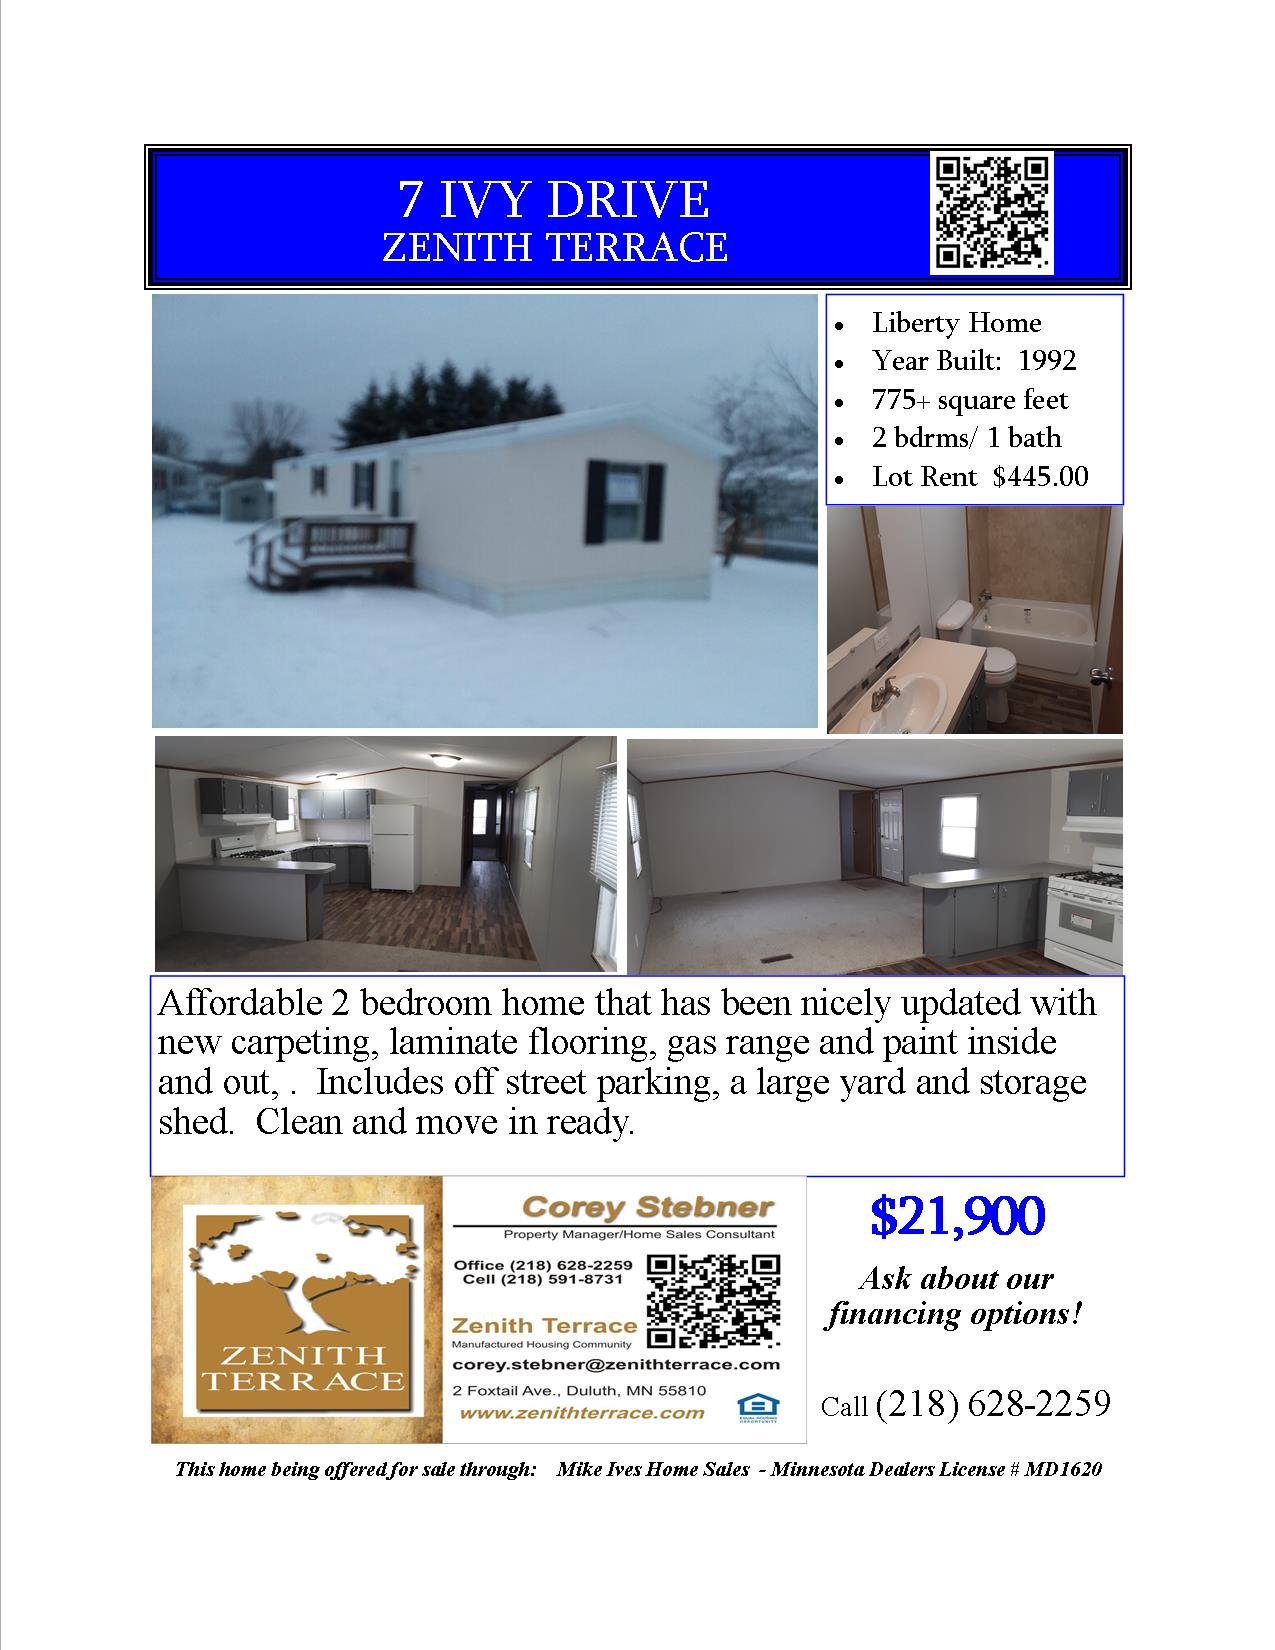 Mobile Home Dealers Near Duluth Mn Car Design Today